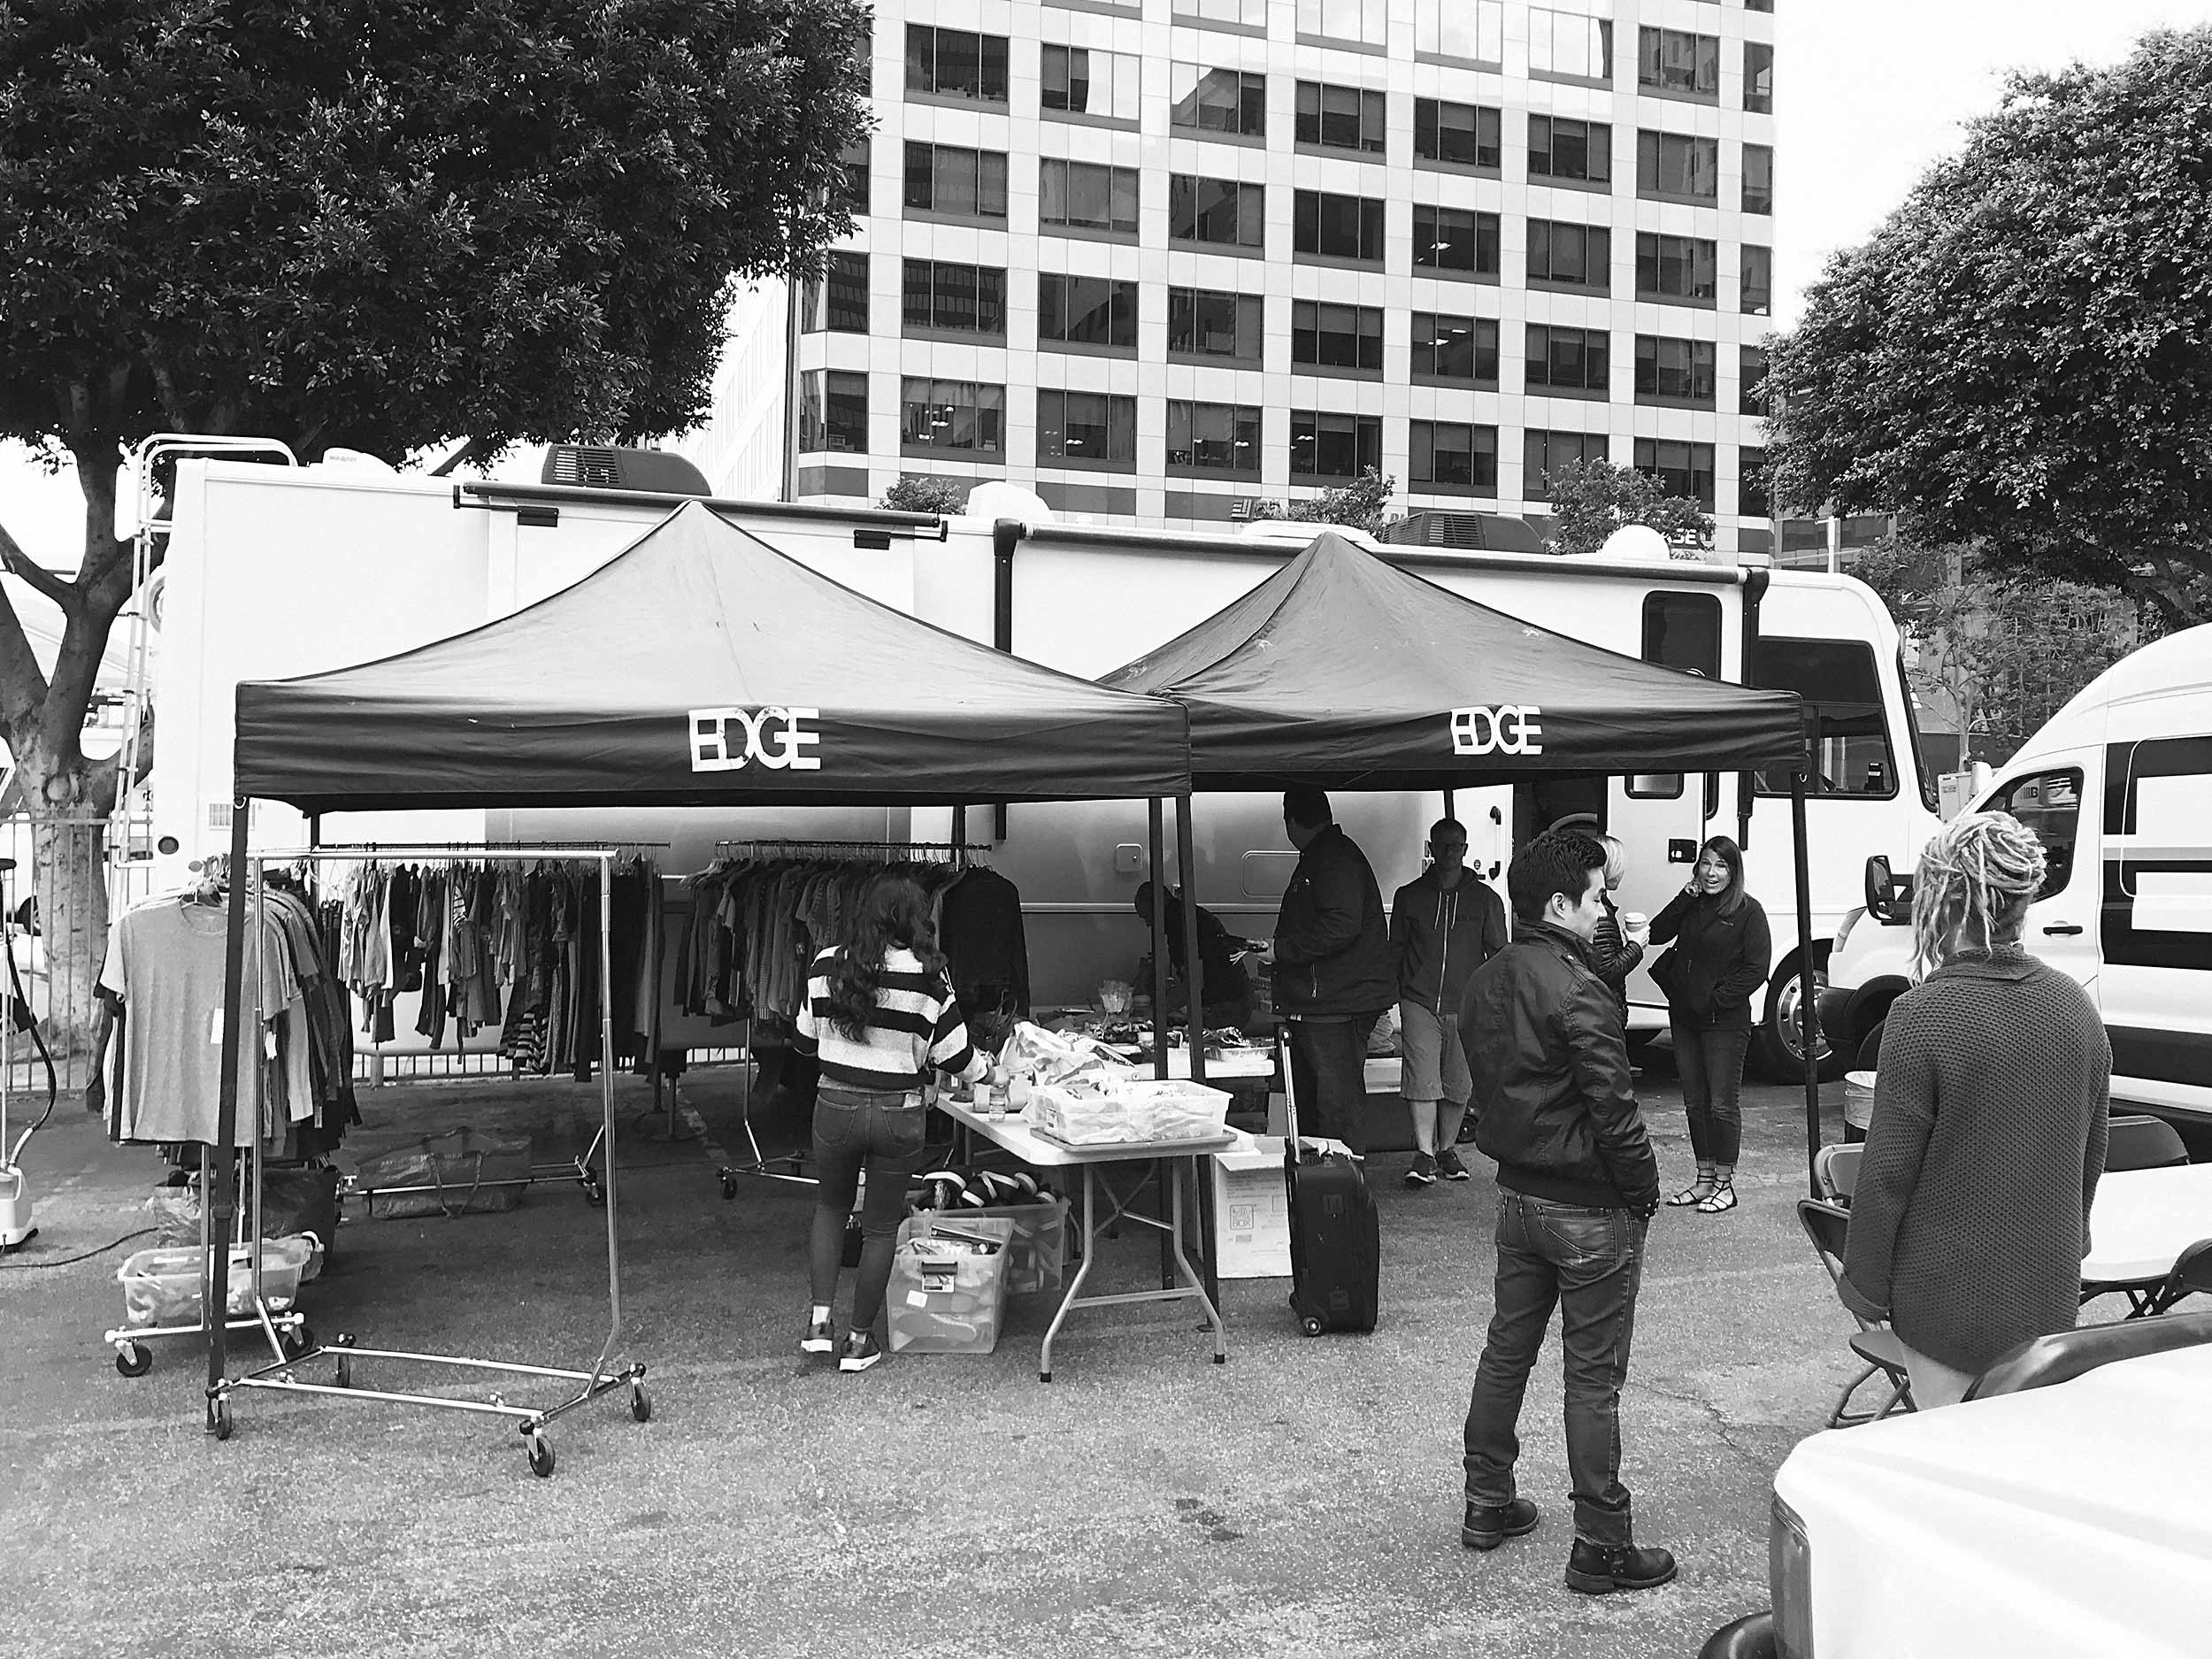 Our home base production area in downtown Los Angeles thanks to EDGE rental complete with RV and Grip truck.